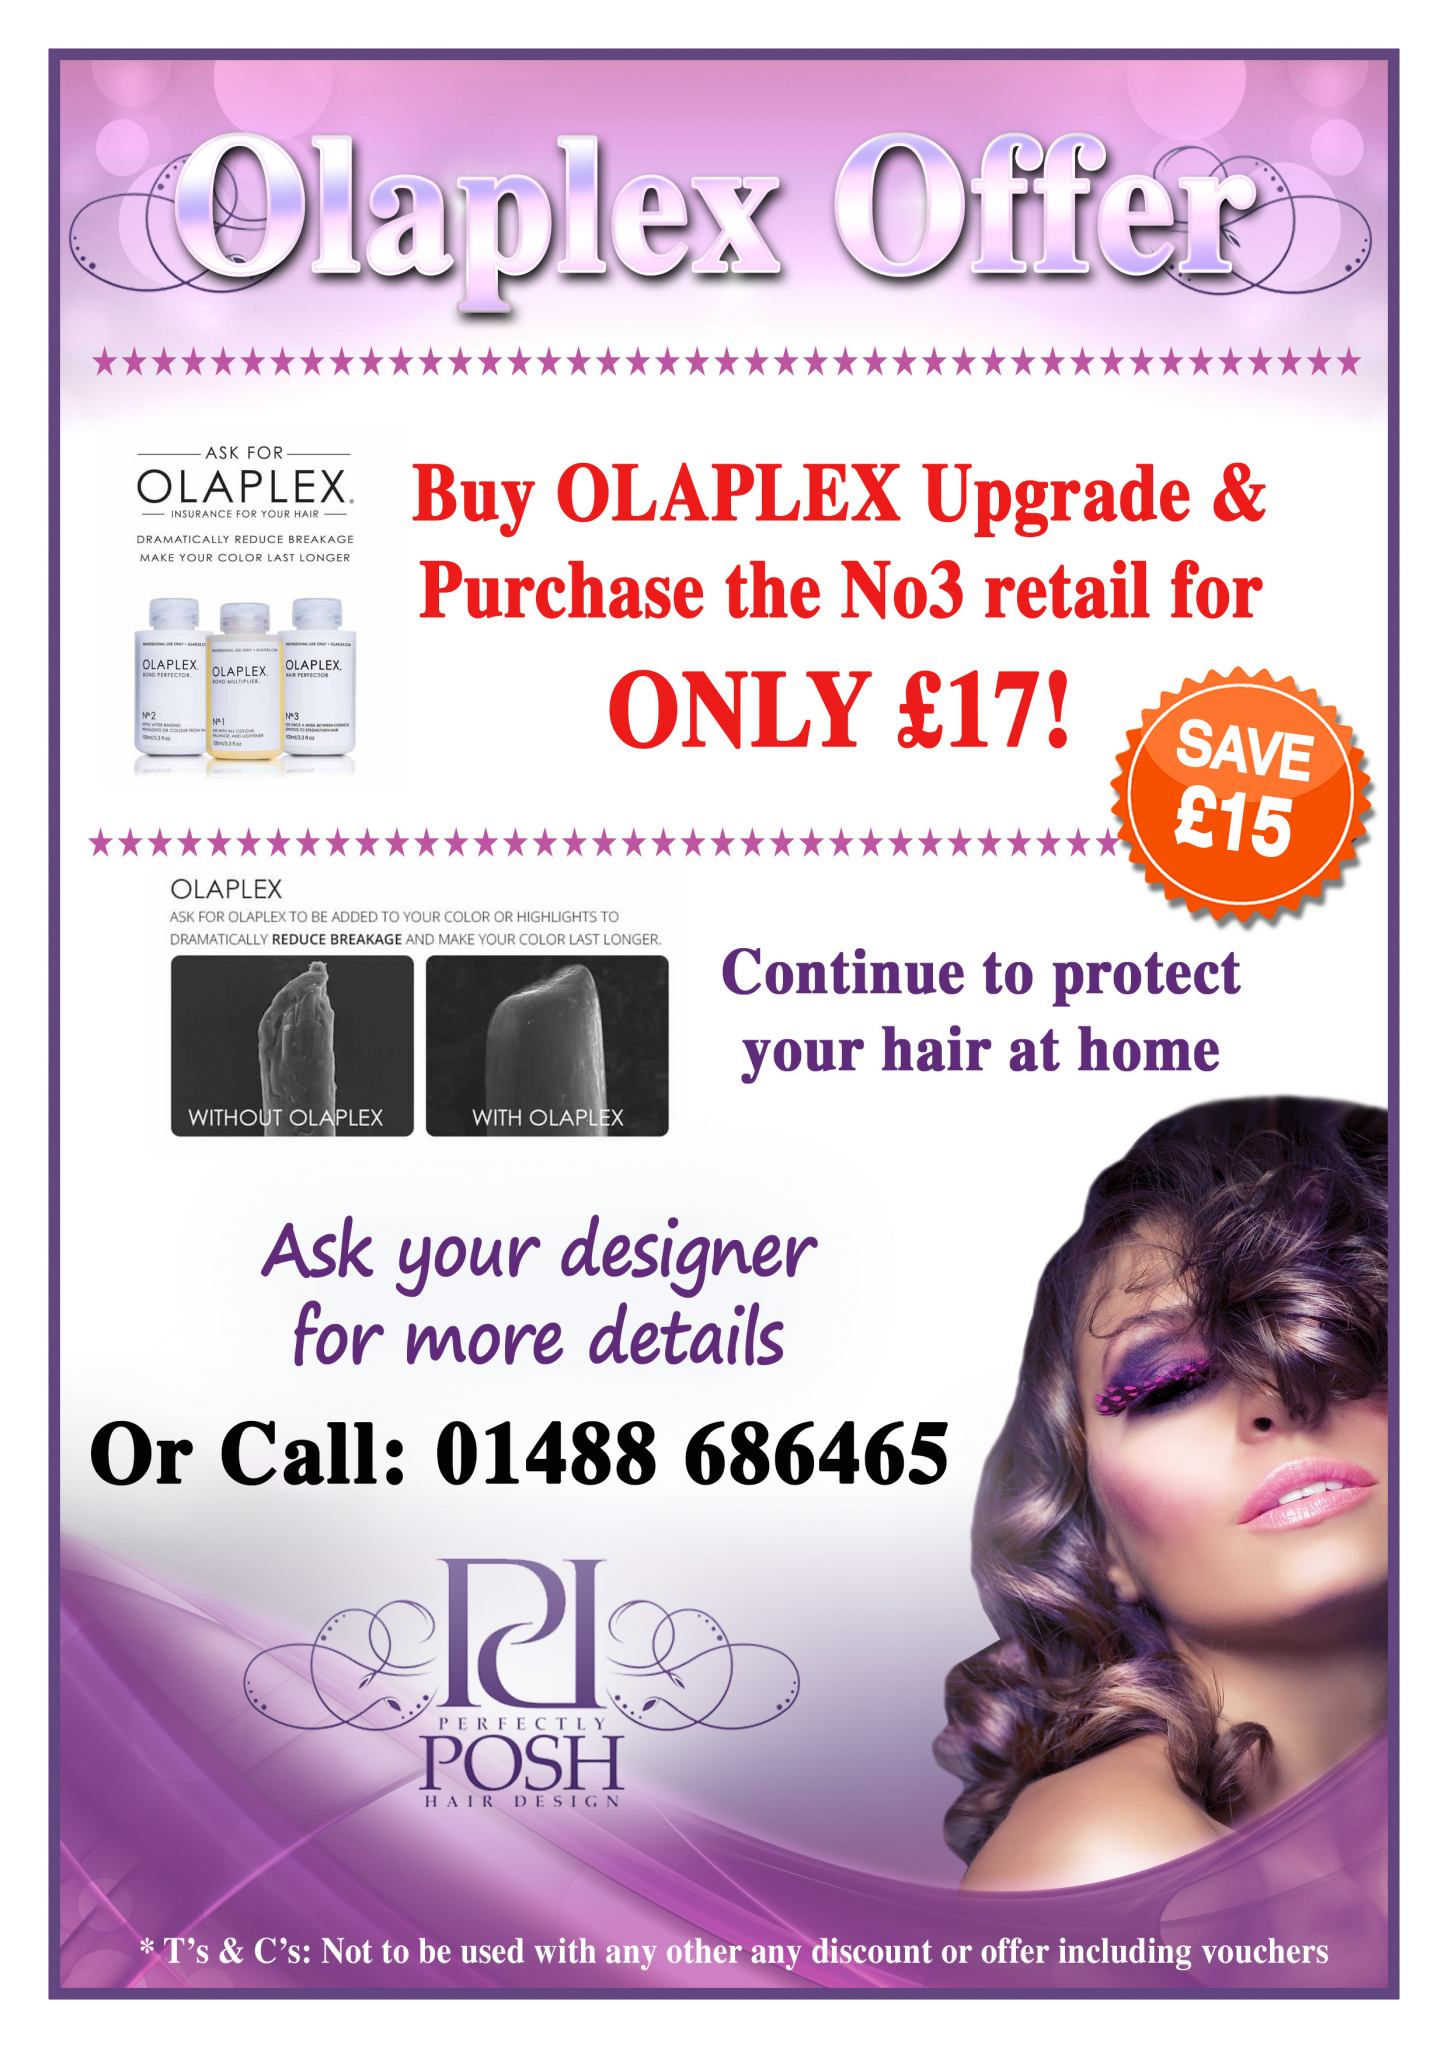 Get an OLAPLEX™ Hair Treatment For The Special Price of £17!!